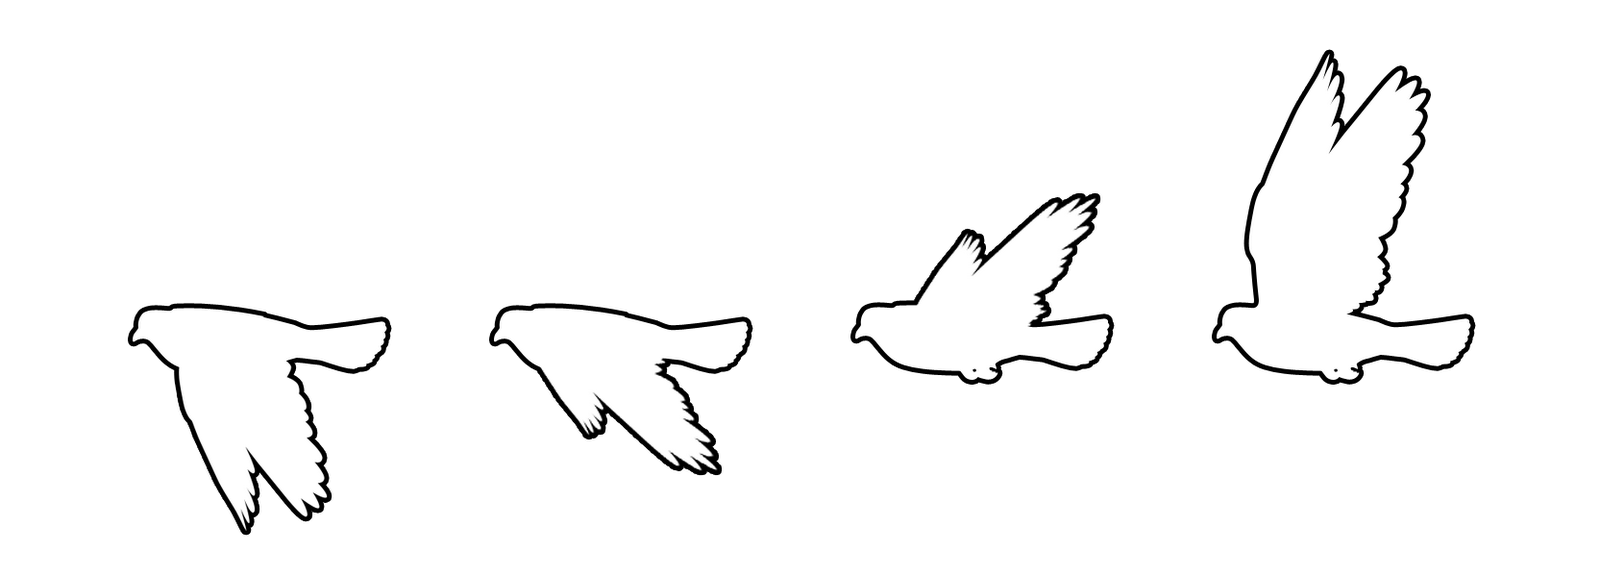 Pigeon clipart simple bird Wing can shows sequence This